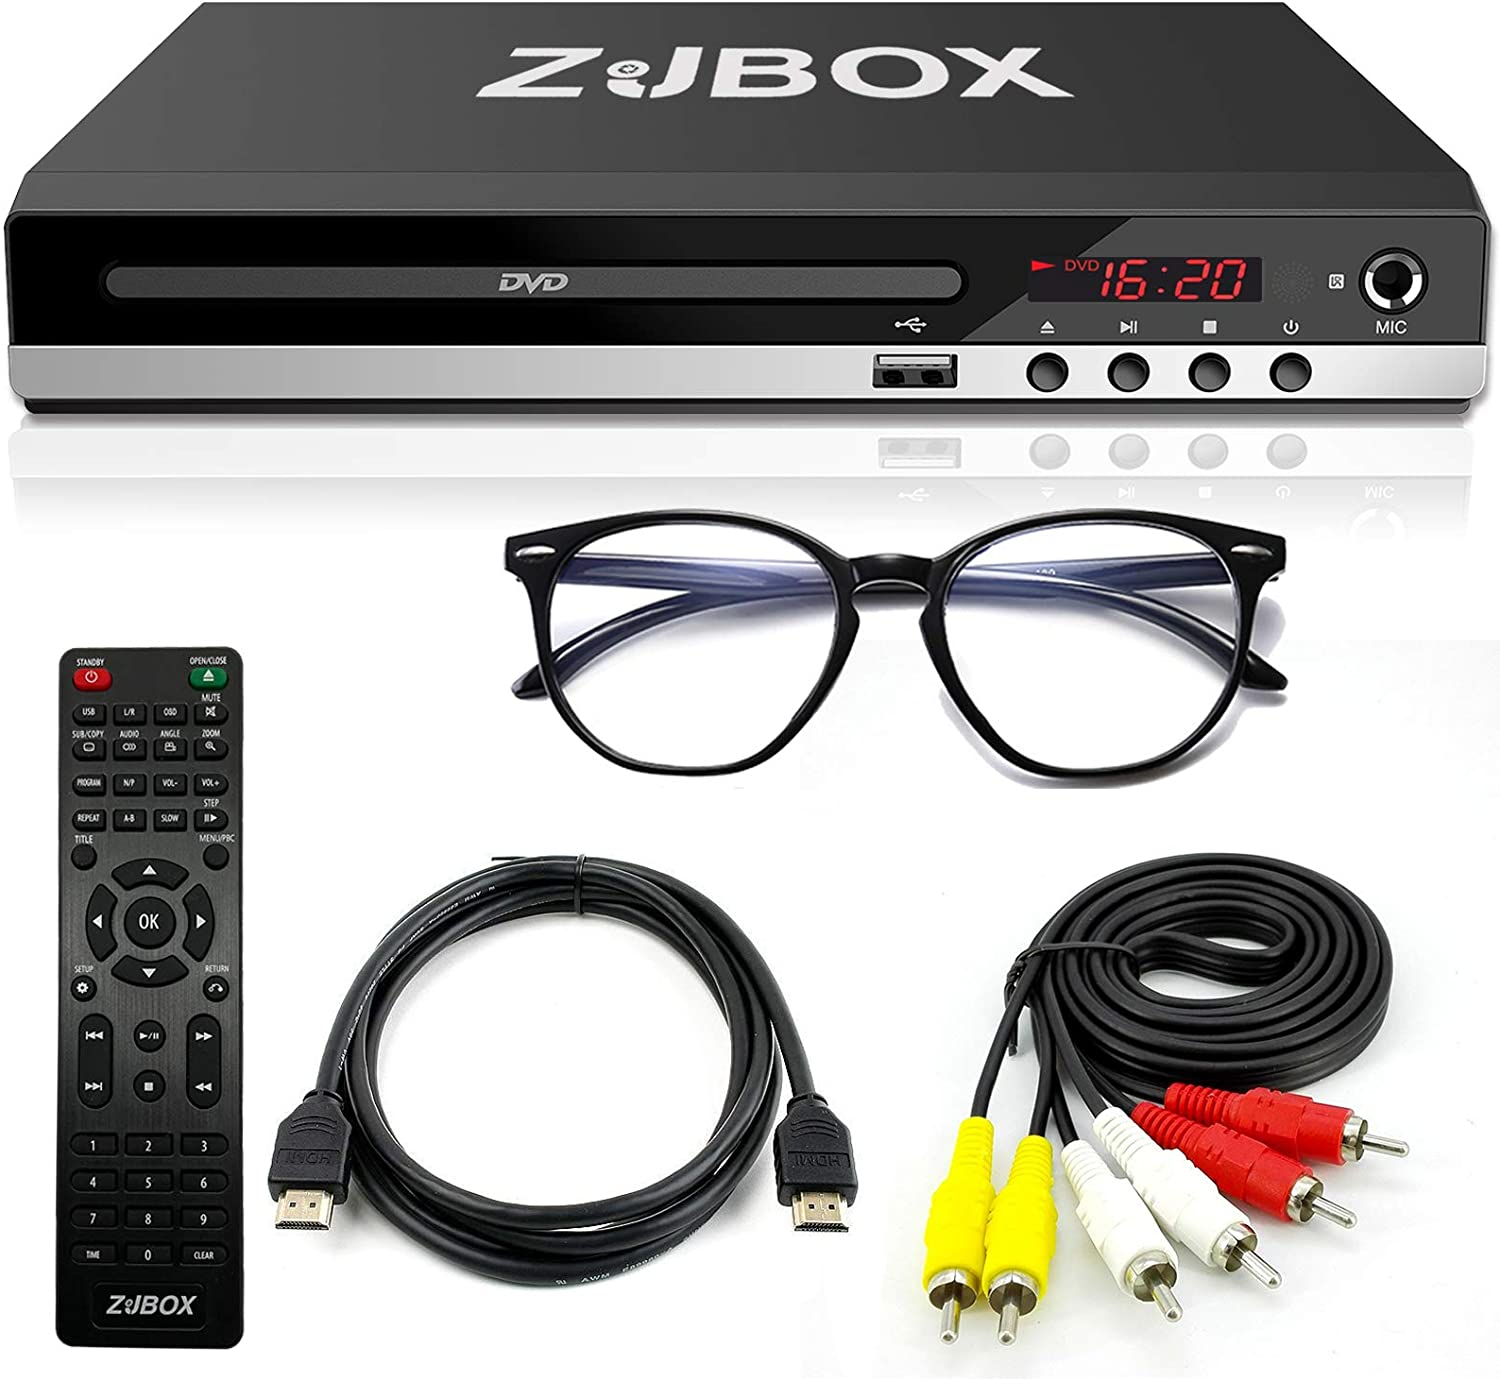 DVD Player, Compact DVD Player for TV with HDMI/AV Outputs, HDMI 2.0 & AV Cable Included, All Region DVD Player Support 1080P Full HD USB Multimedia Player Function for Home, Upgrated Remote Control